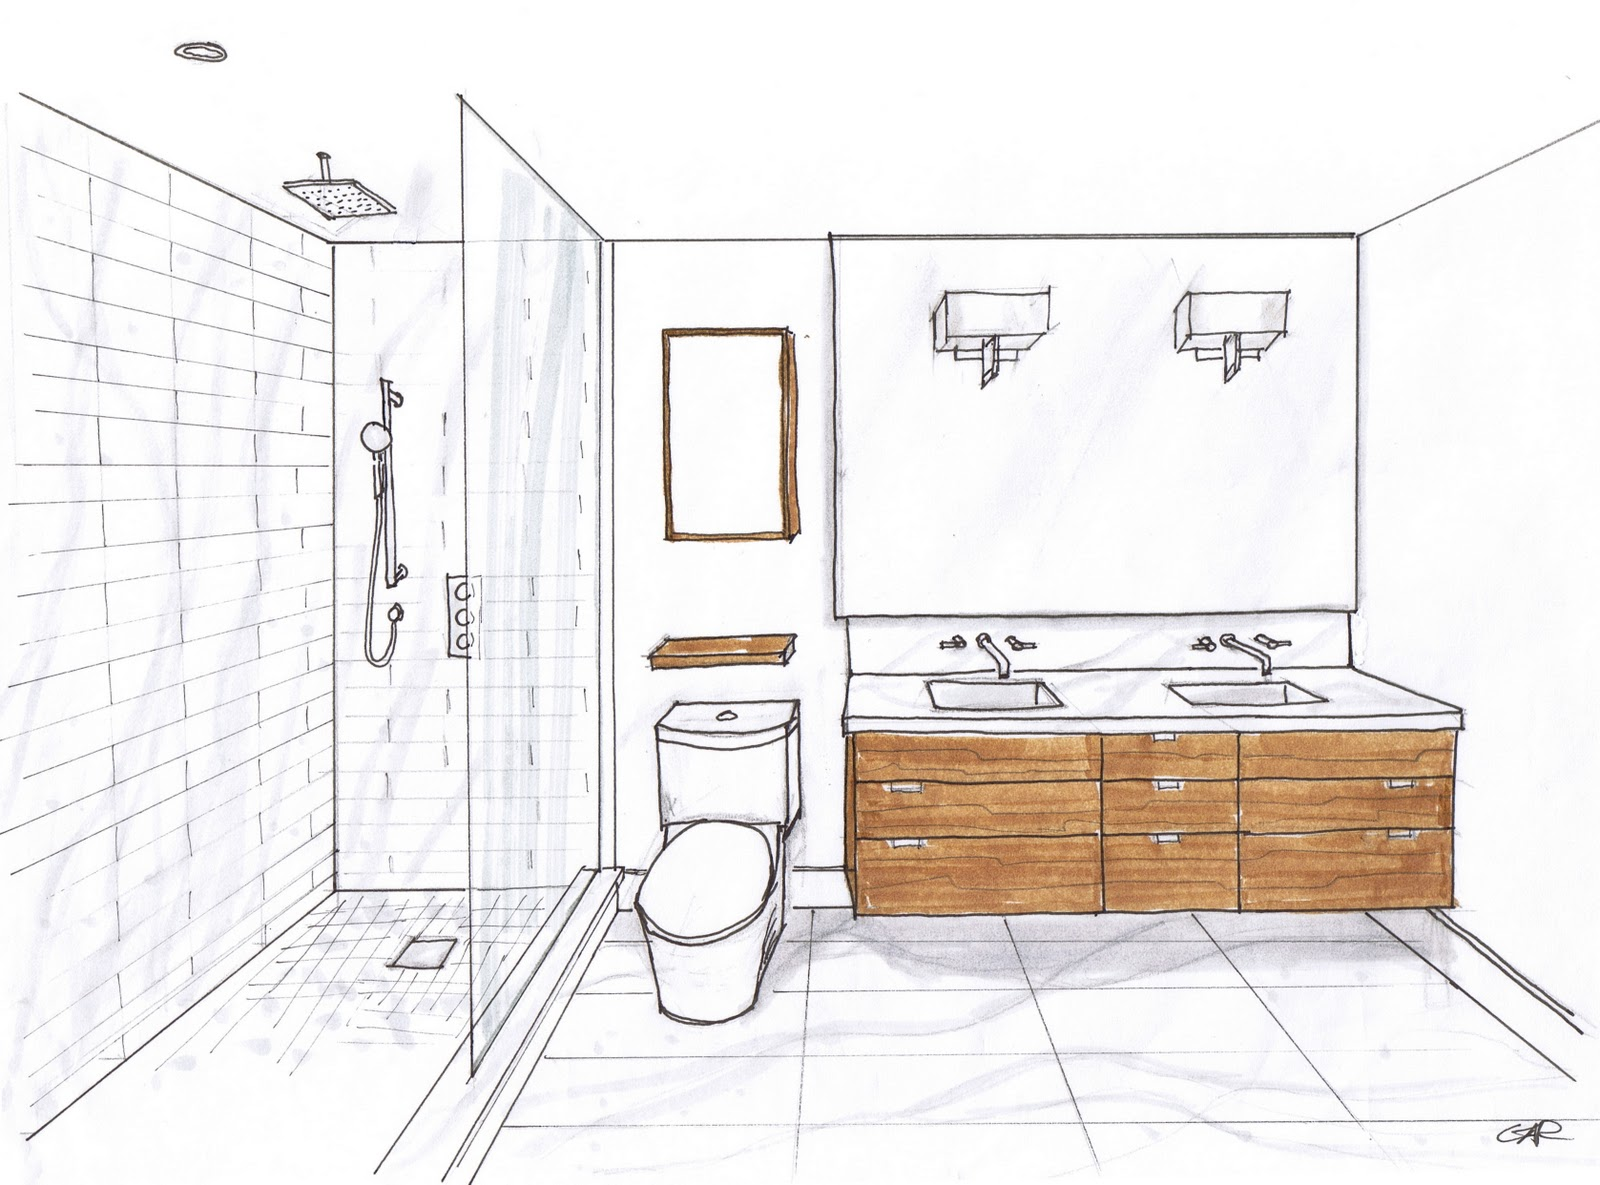 Creed 70 39 s bungalow bathroom designs for Bathroom design 6 x 6